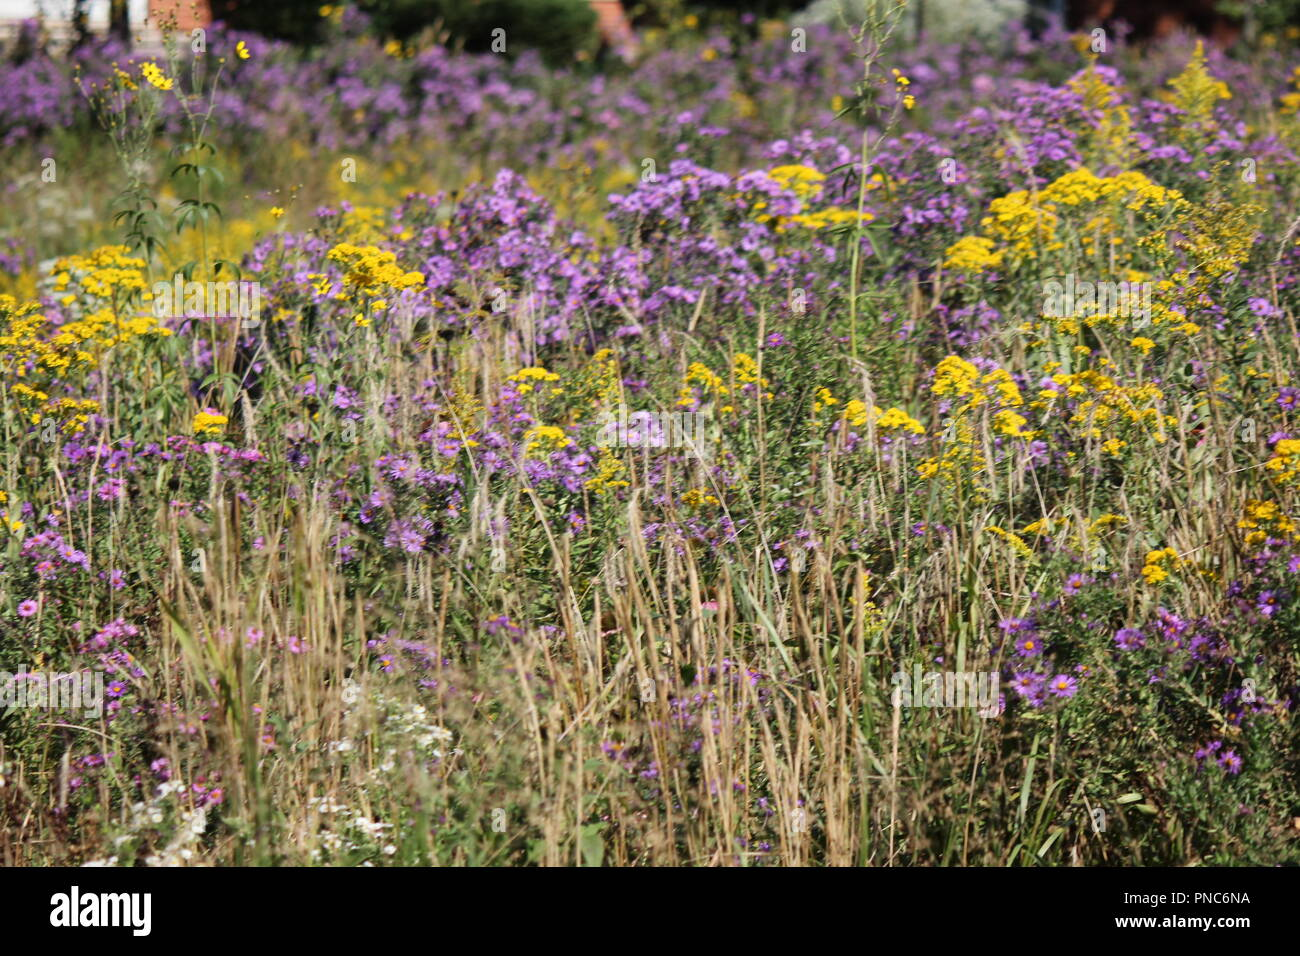 Beautiful field of blossoming wildflowers in the late summer and early fall in Park Ridge, Illinois. - Stock Image